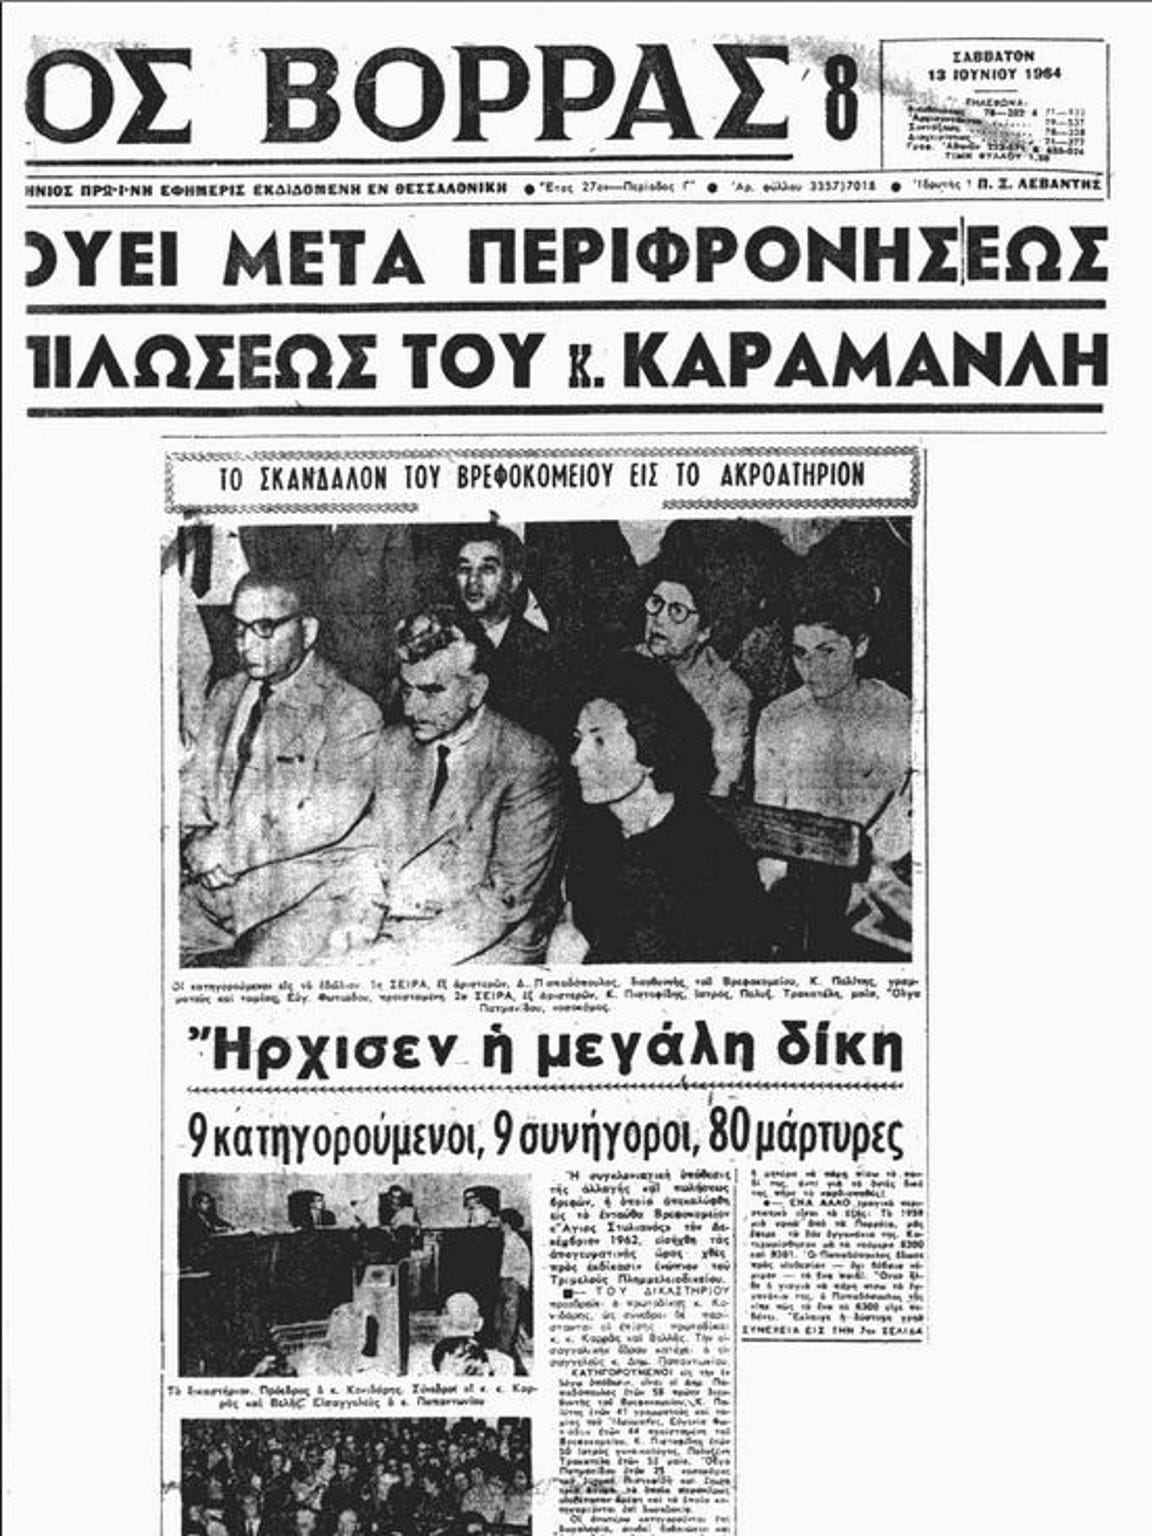 """The cover story of the June 13, 1964, edition of """"Greek"""